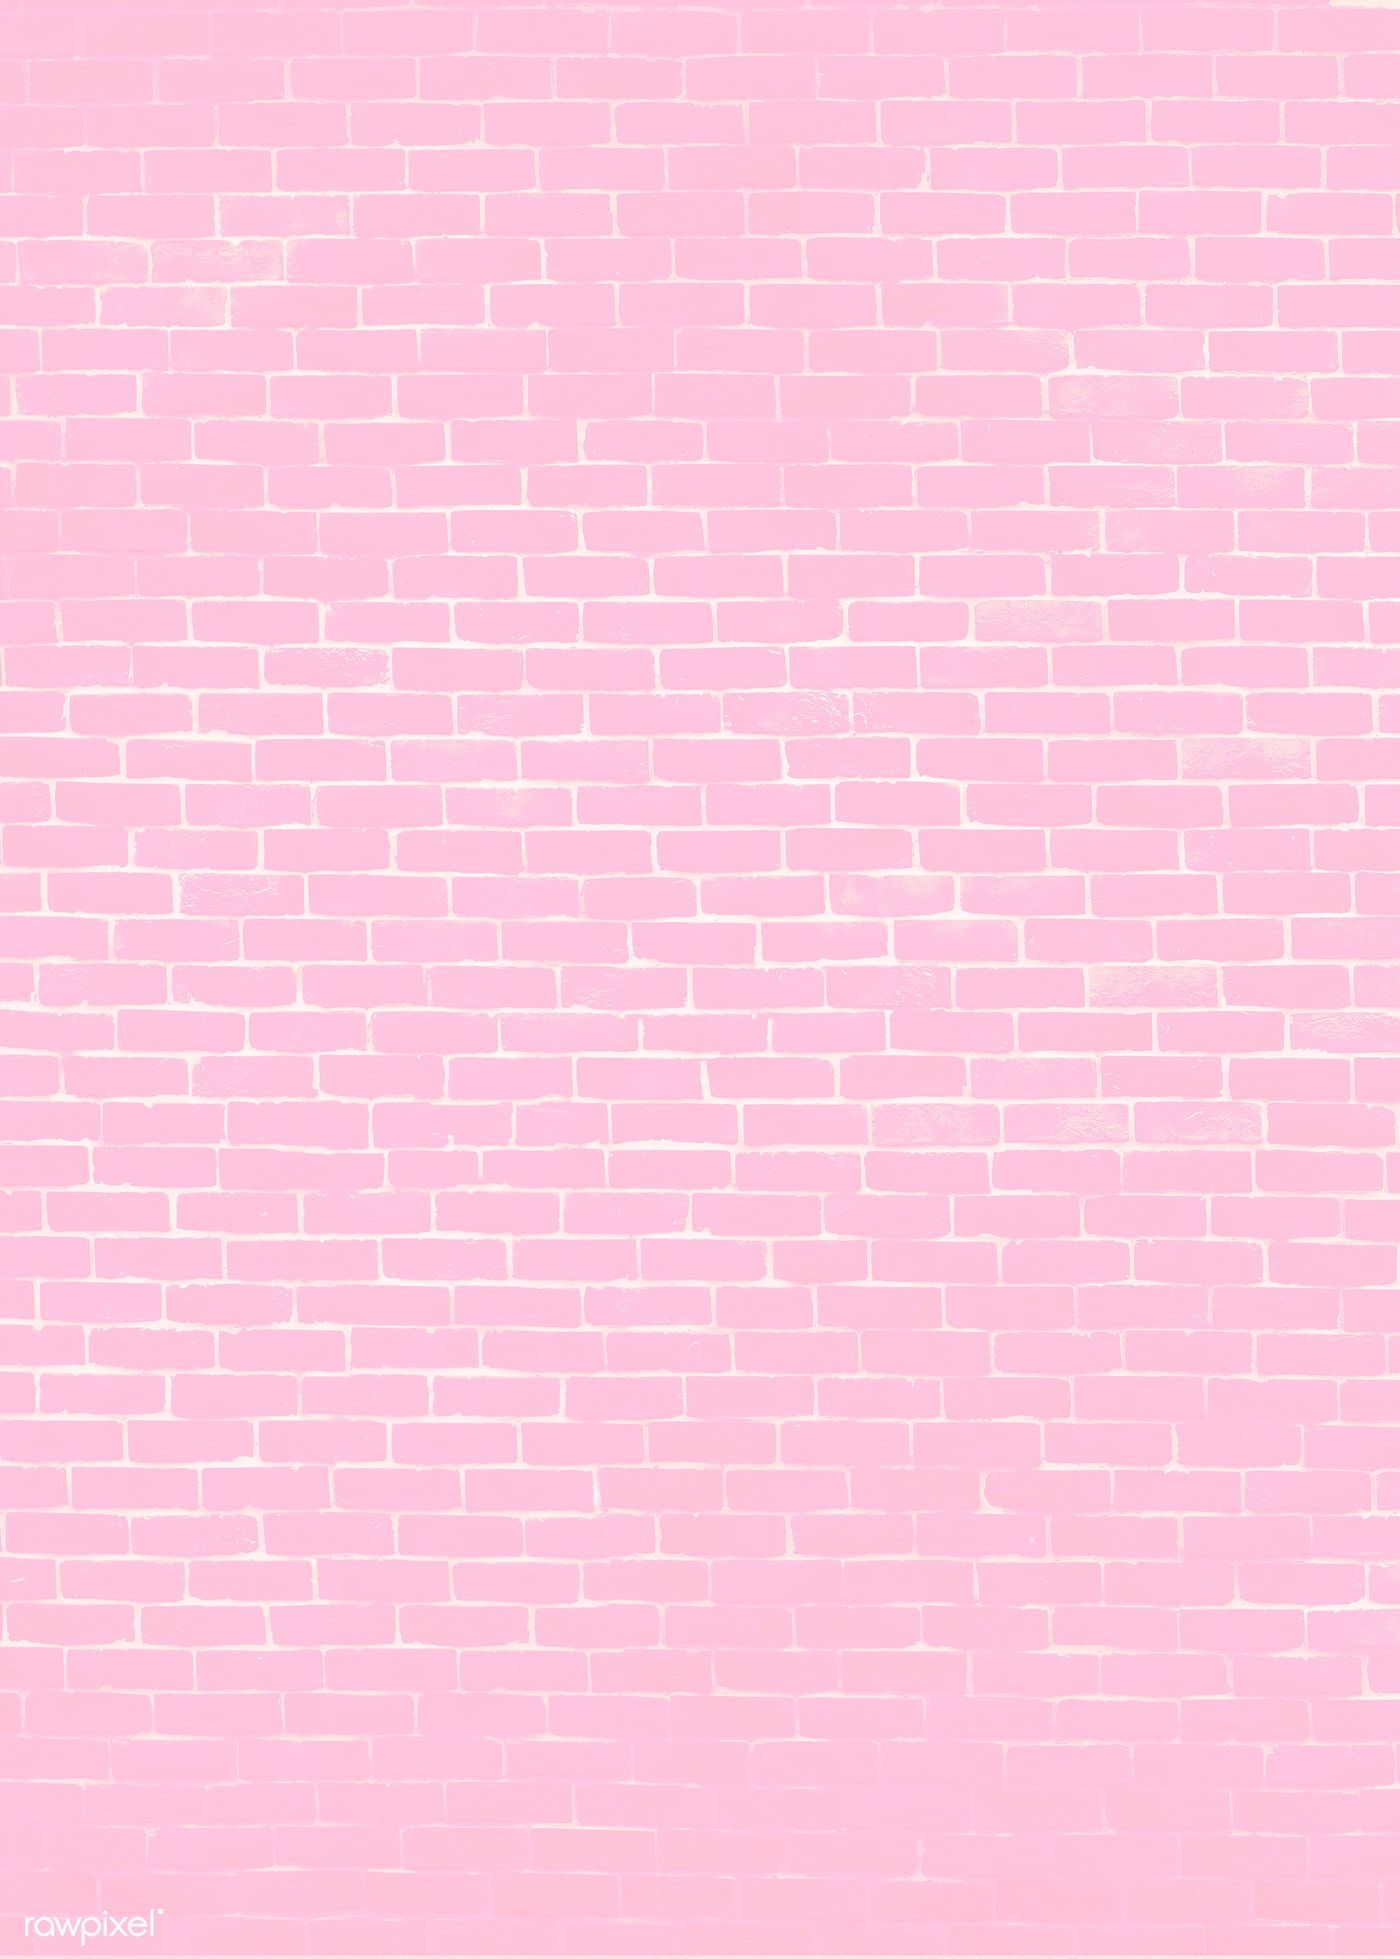 Pink brick wall textured background free image by